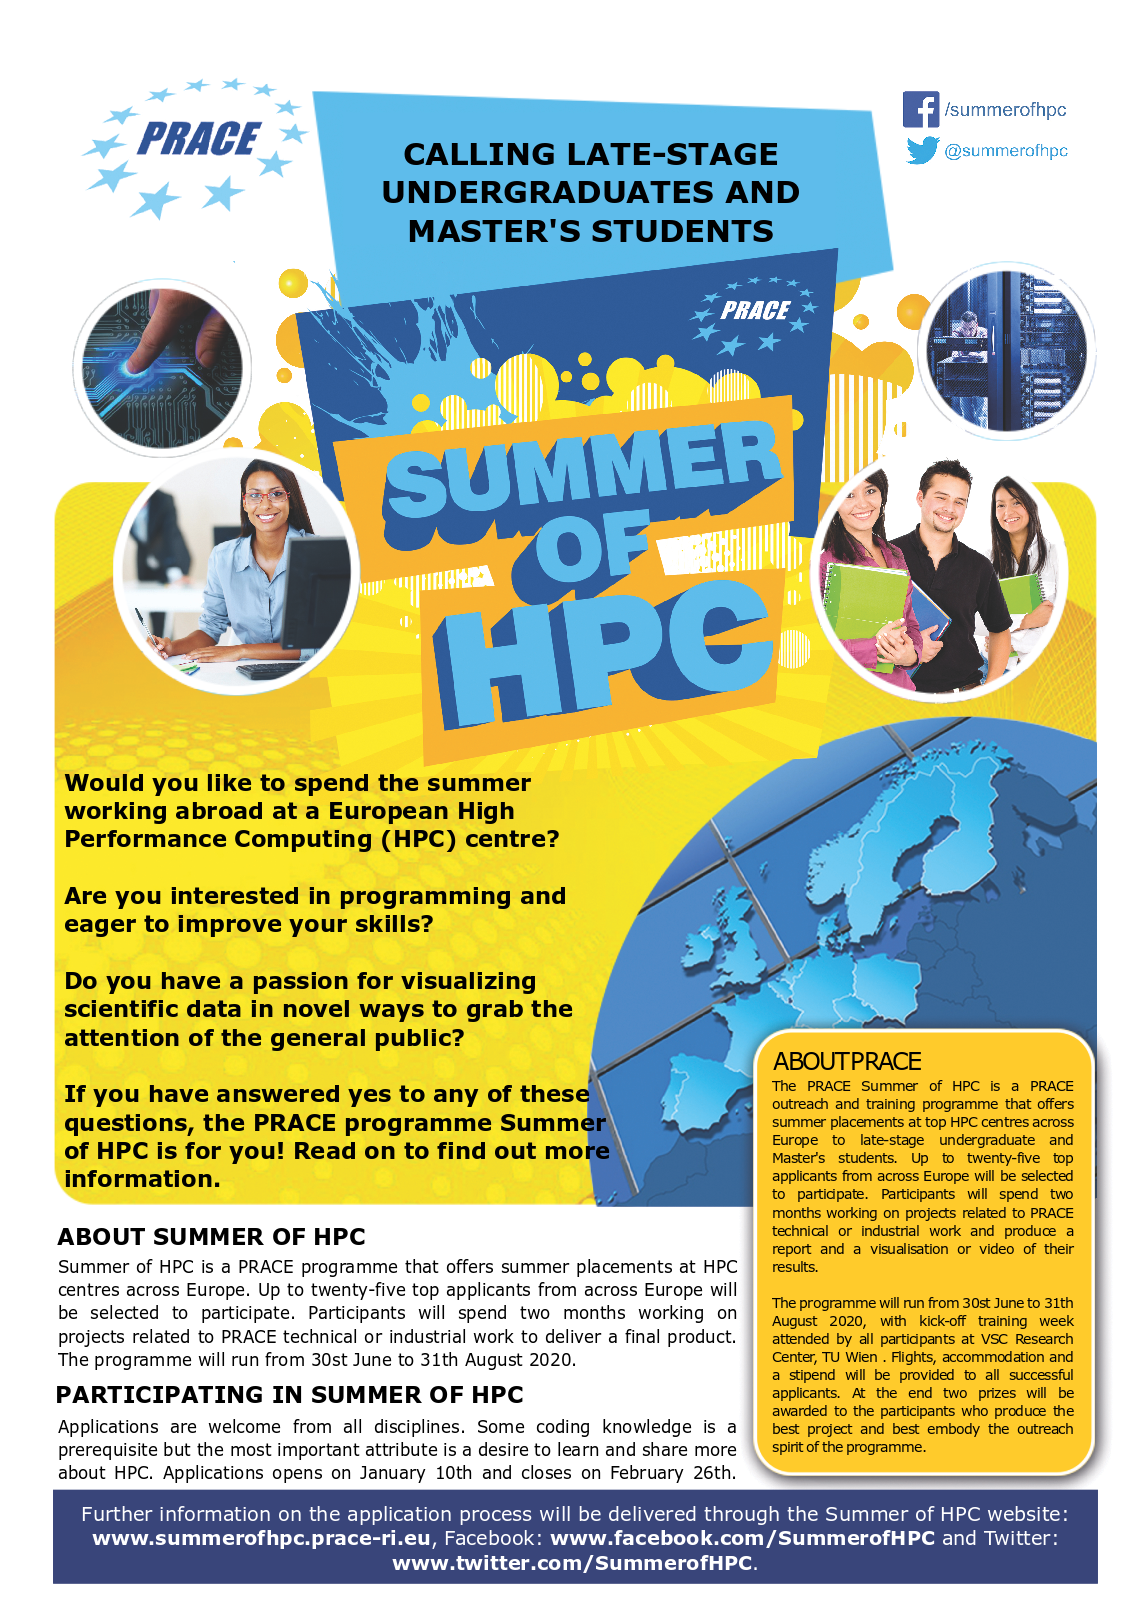 PRACE summer of HPC 2020 opens applications